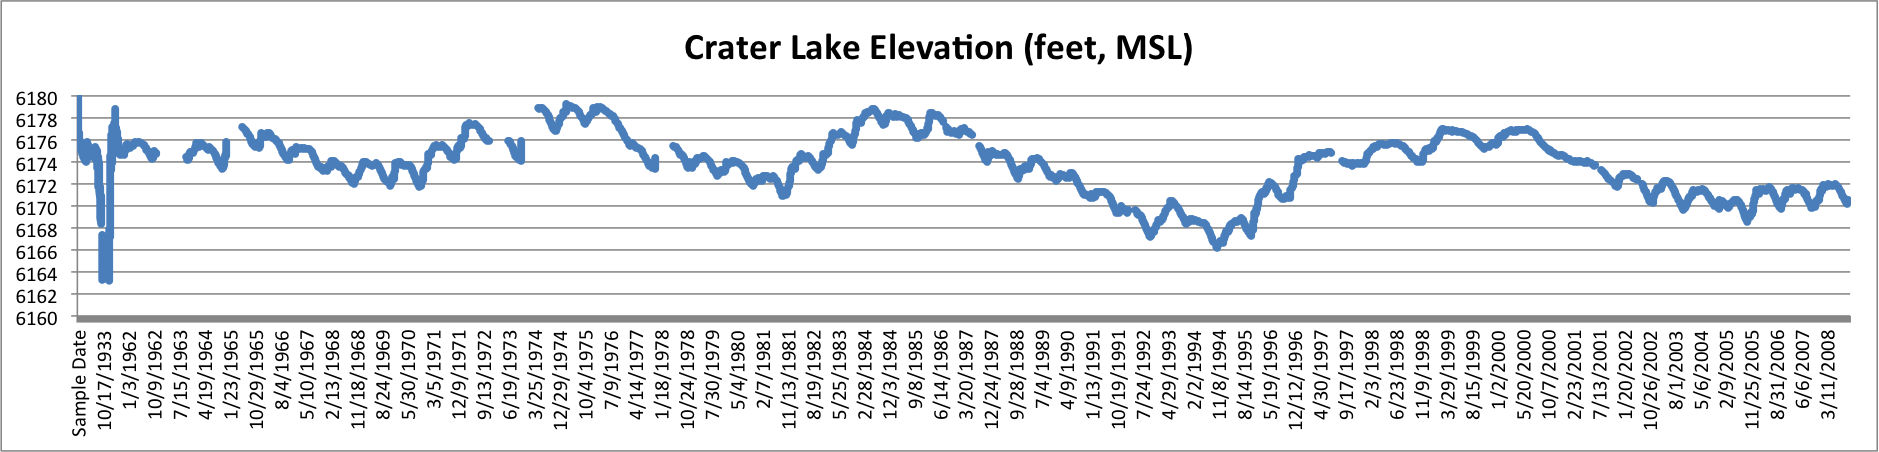 Crater Lake surface elevation